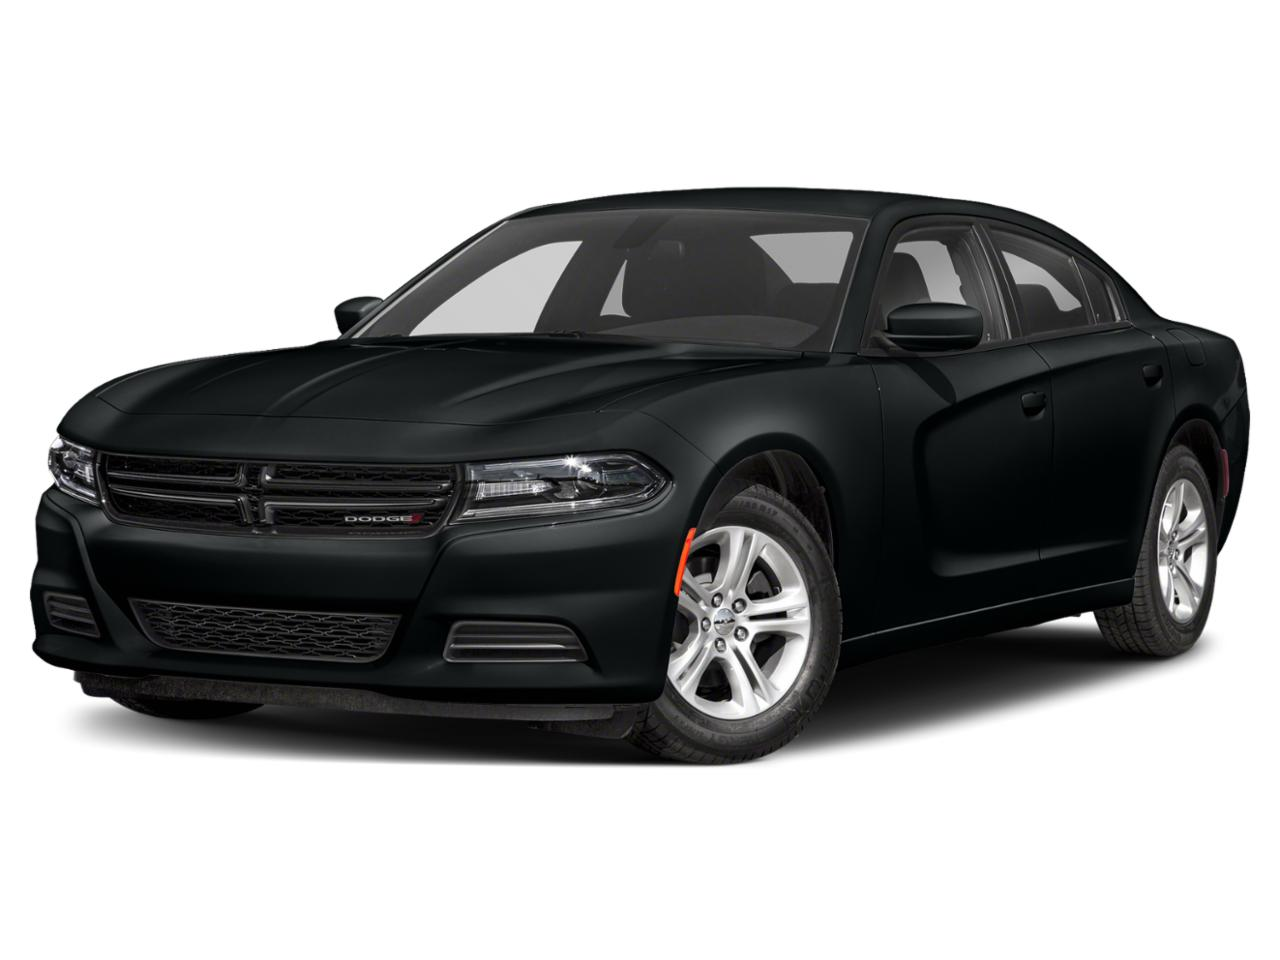 2019 Dodge Charger Vehicle Photo in GAINESVILLE, TX 76240-2013